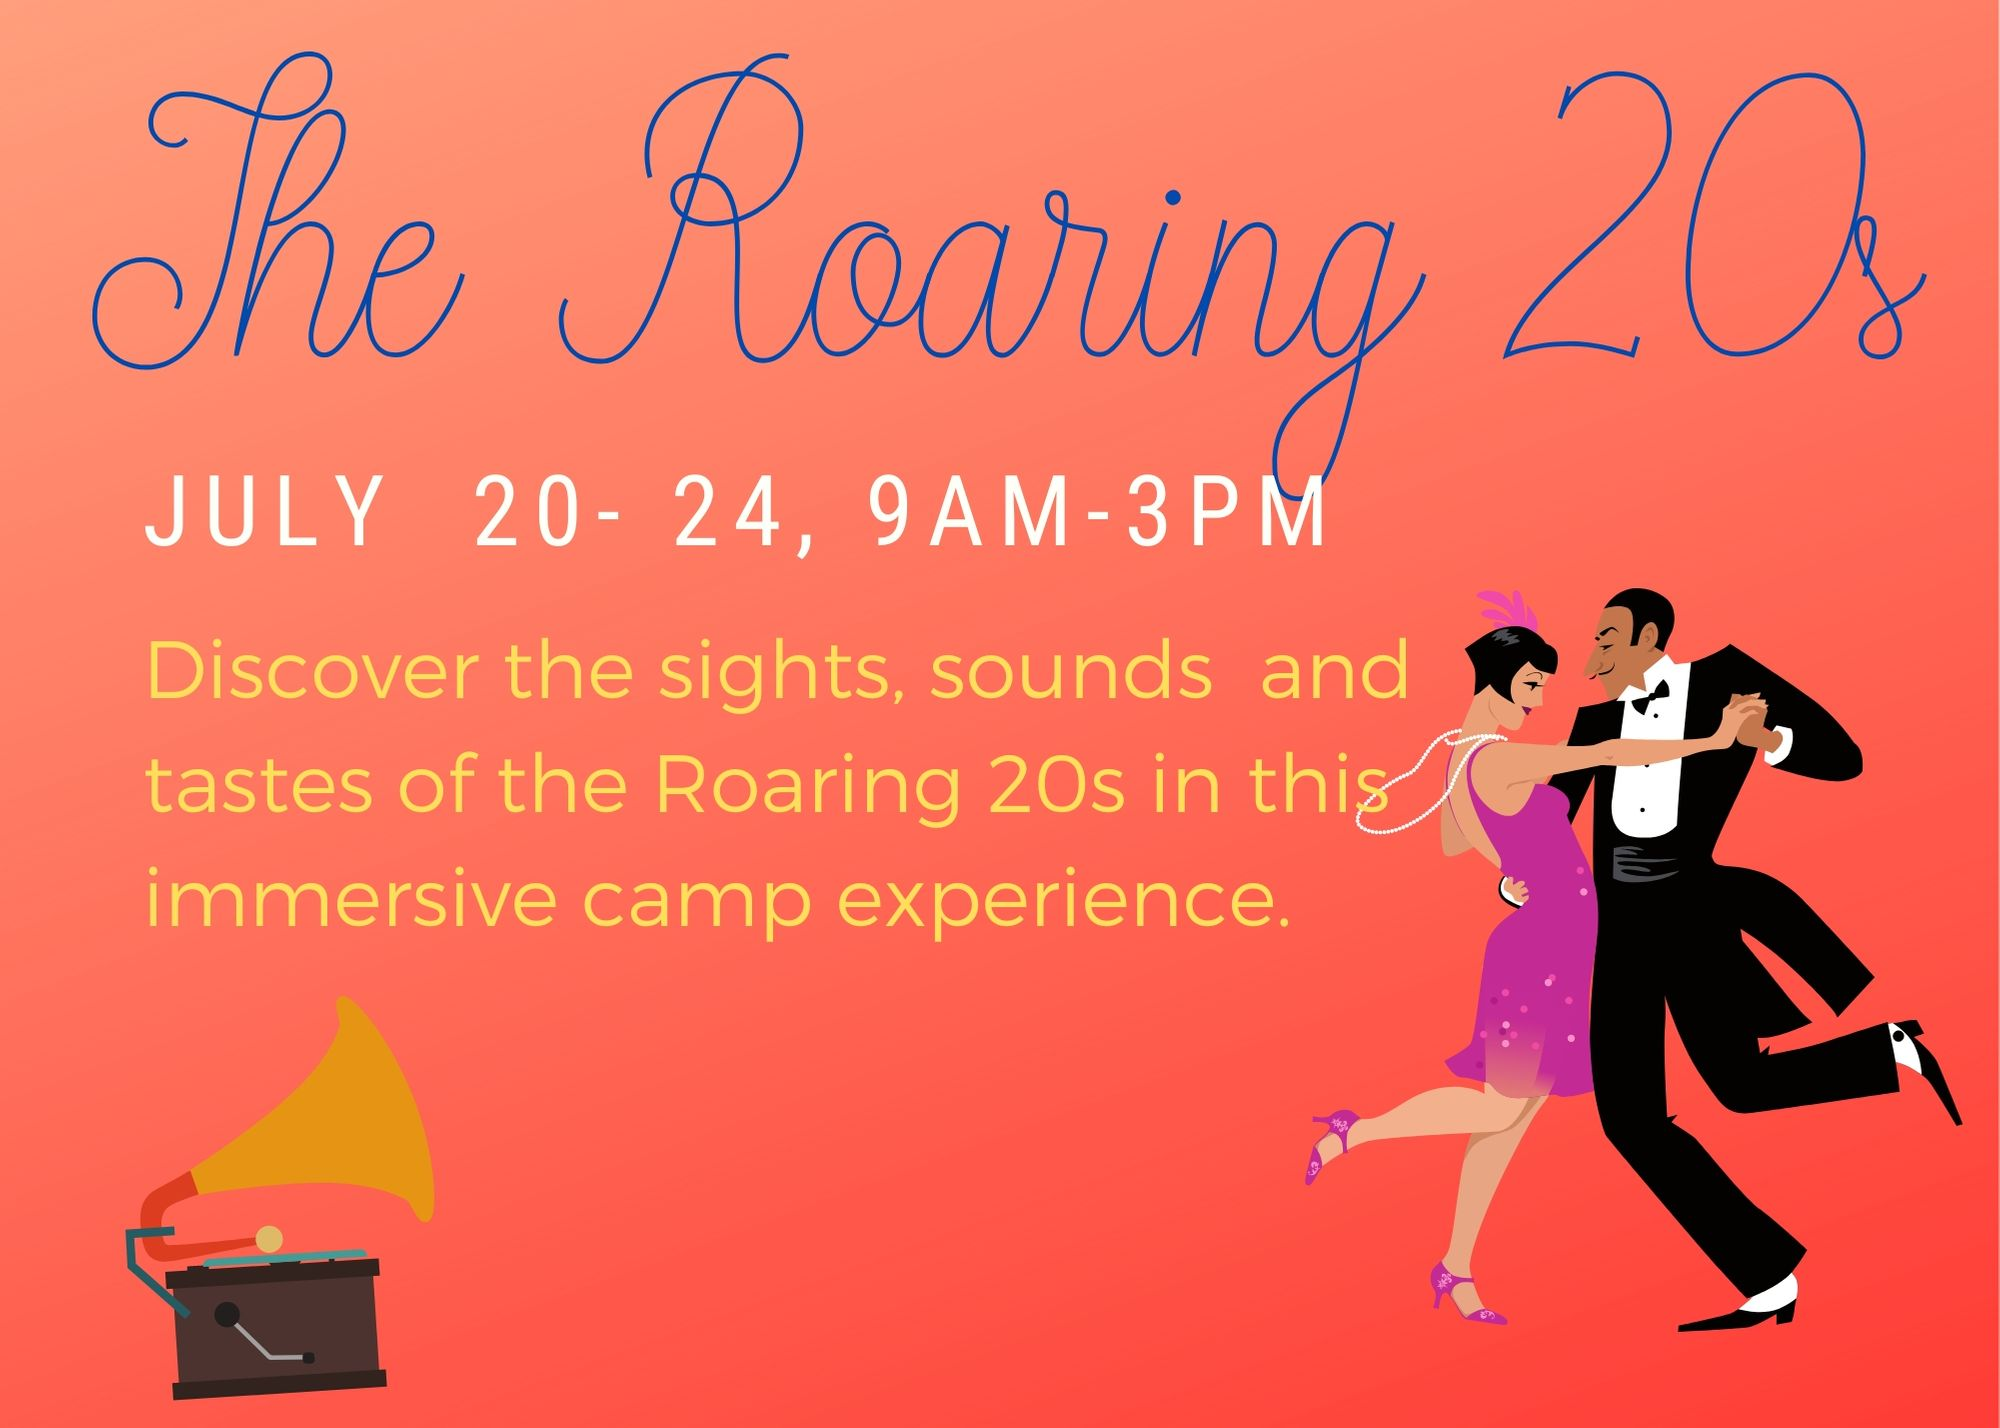 Roaring 20s Summer Camp Image